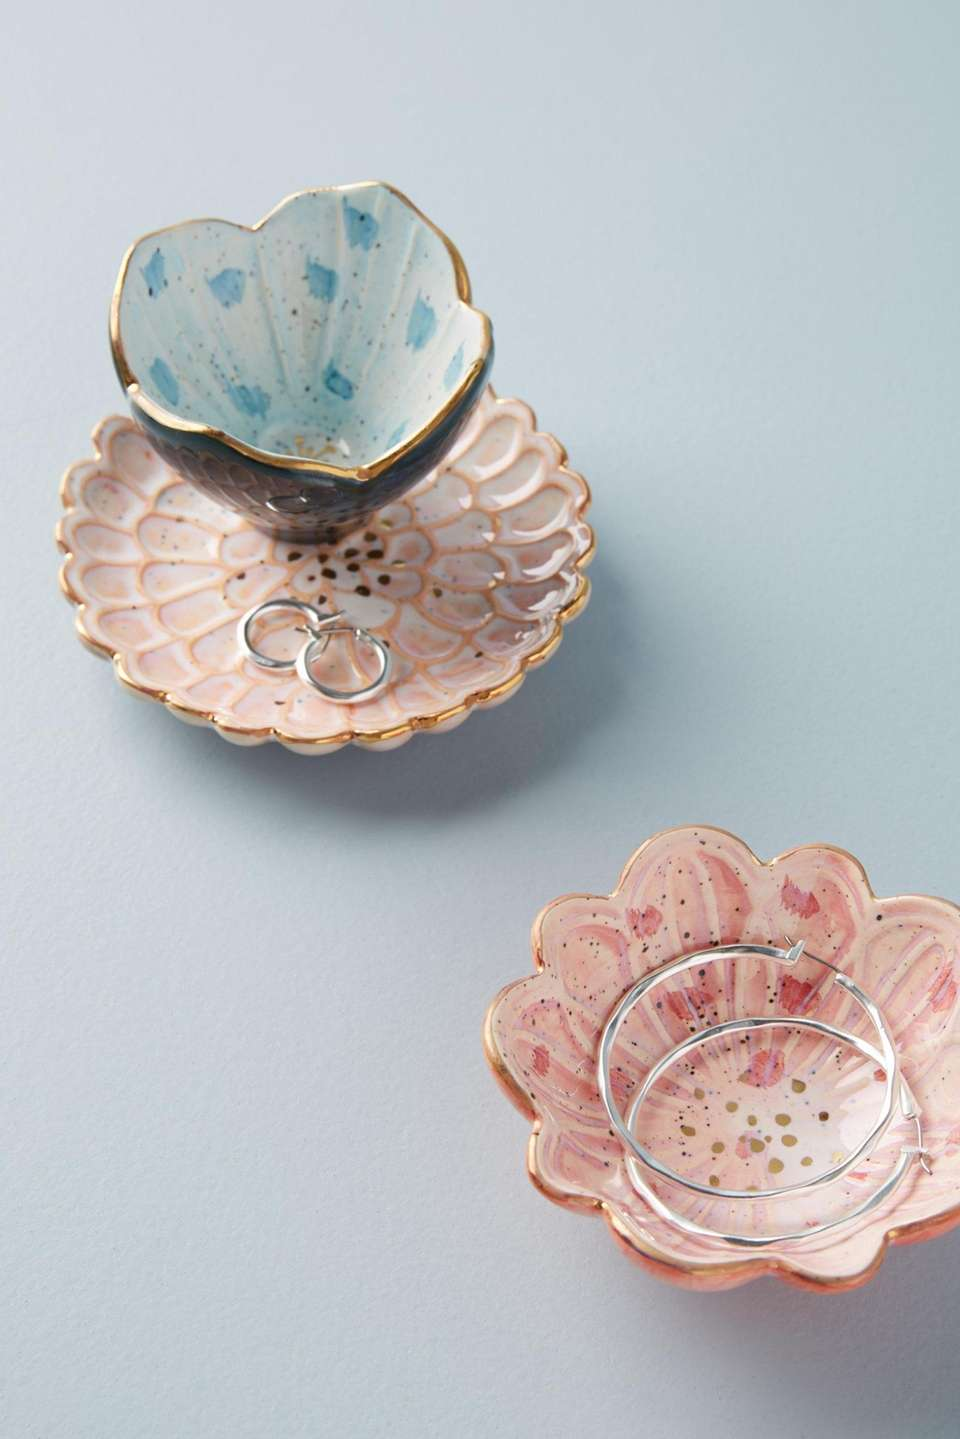 This bloom-inspired trinket dish brings the garden indoors.